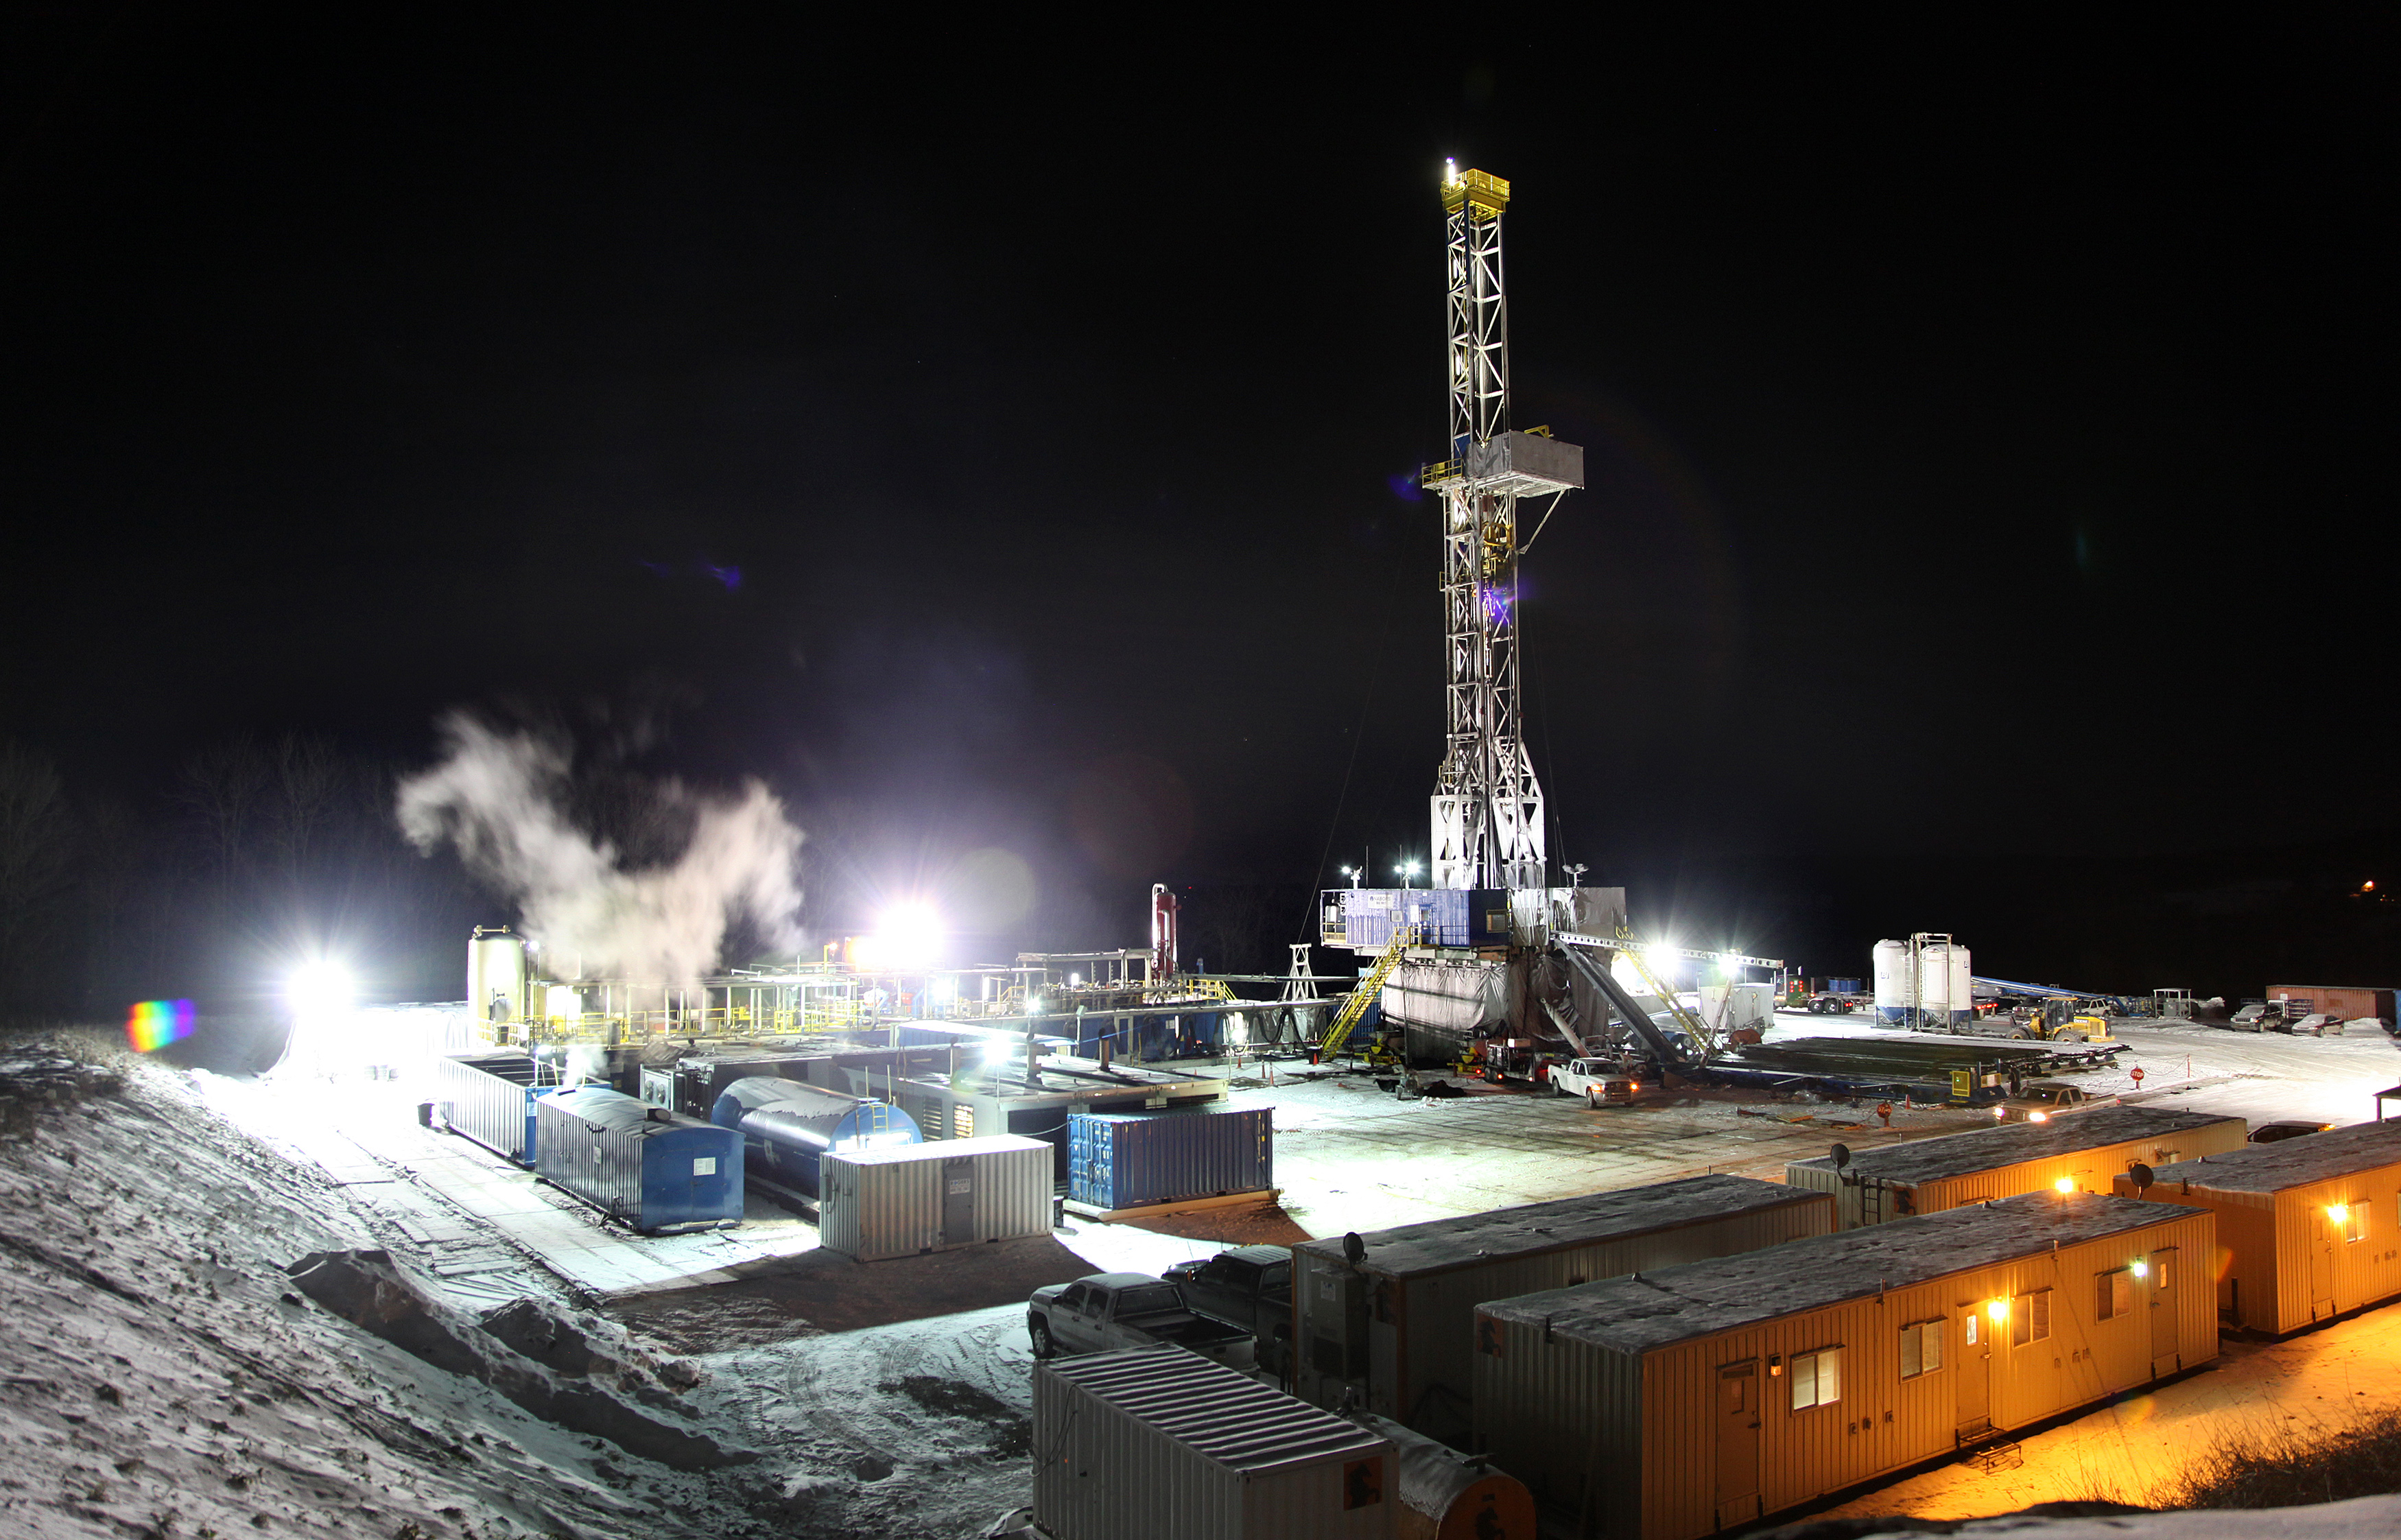 A natural gas drilling site near Montrose, Pa. Image credit: Marcin Szczepanski